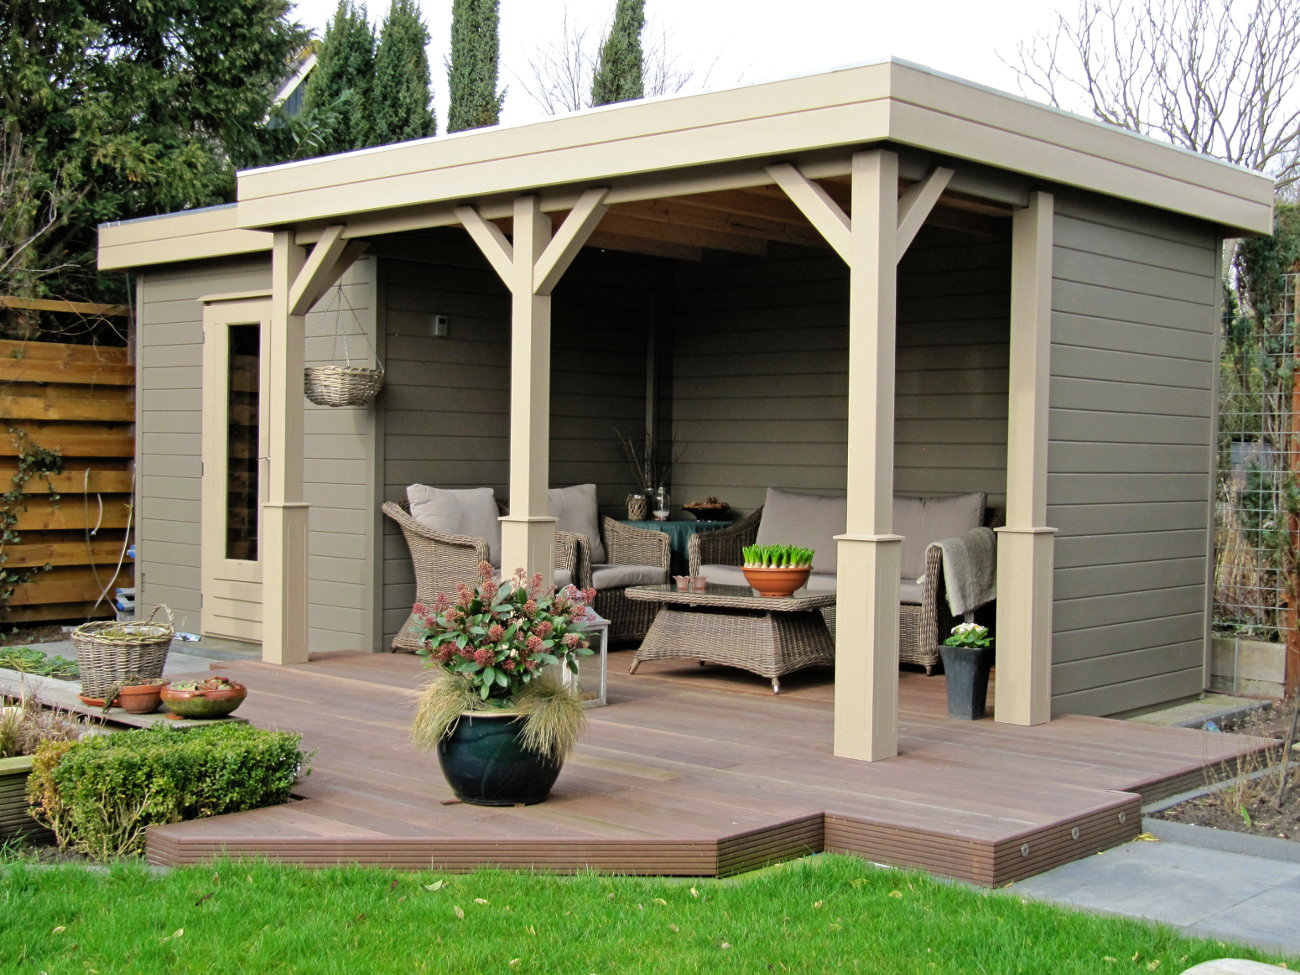 Top Tips Painting A Timber Building Best Products To Use